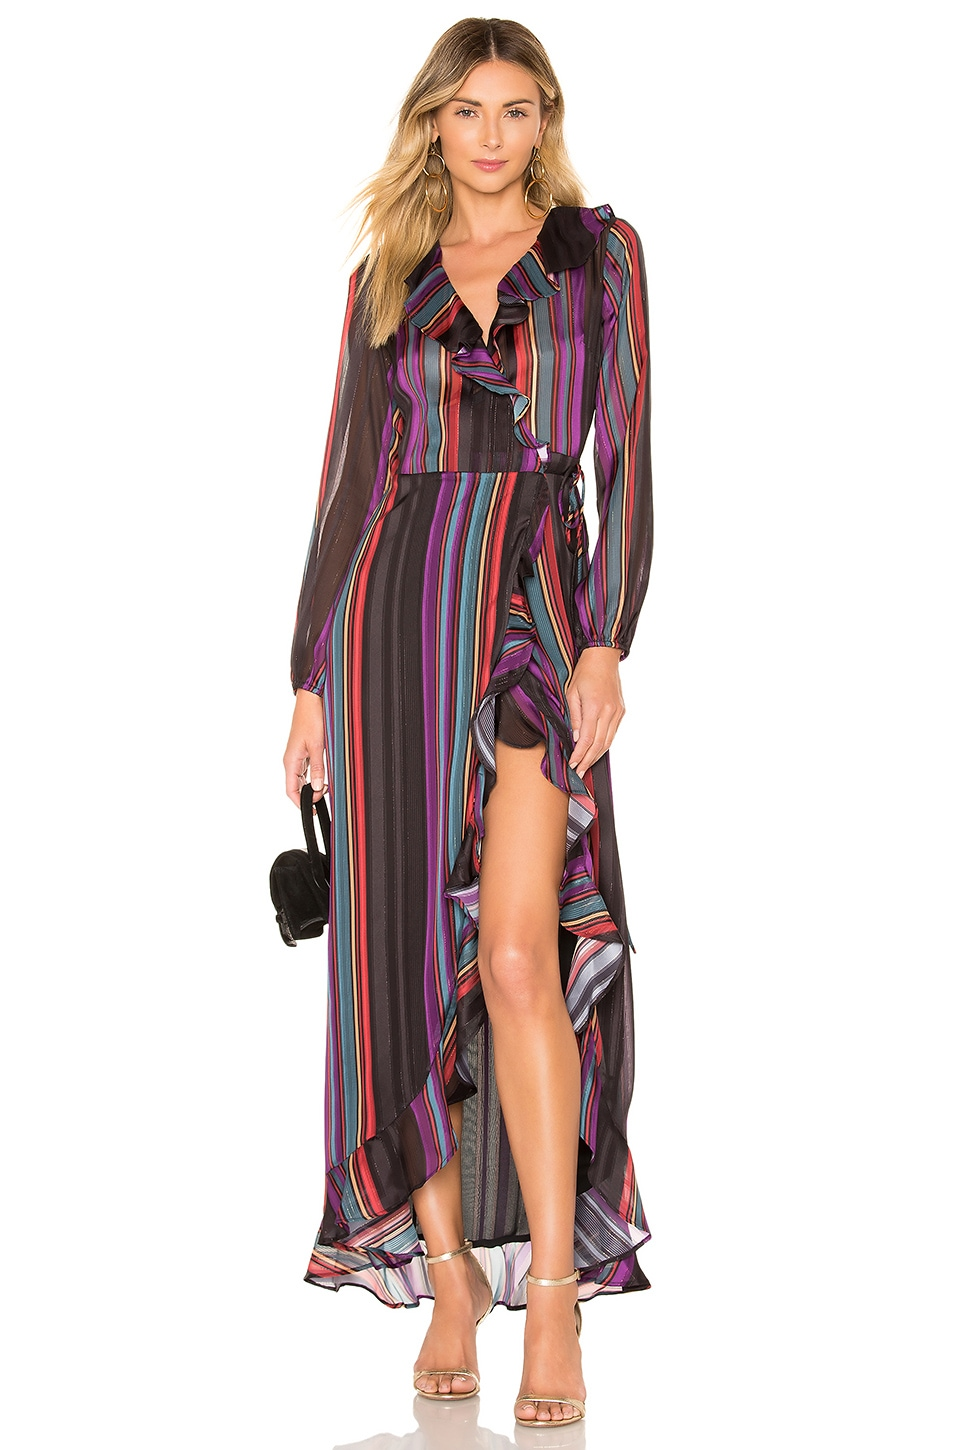 House of Harlow 1960 x REVOLVE Lafayette Dress in Rainbow Stripe